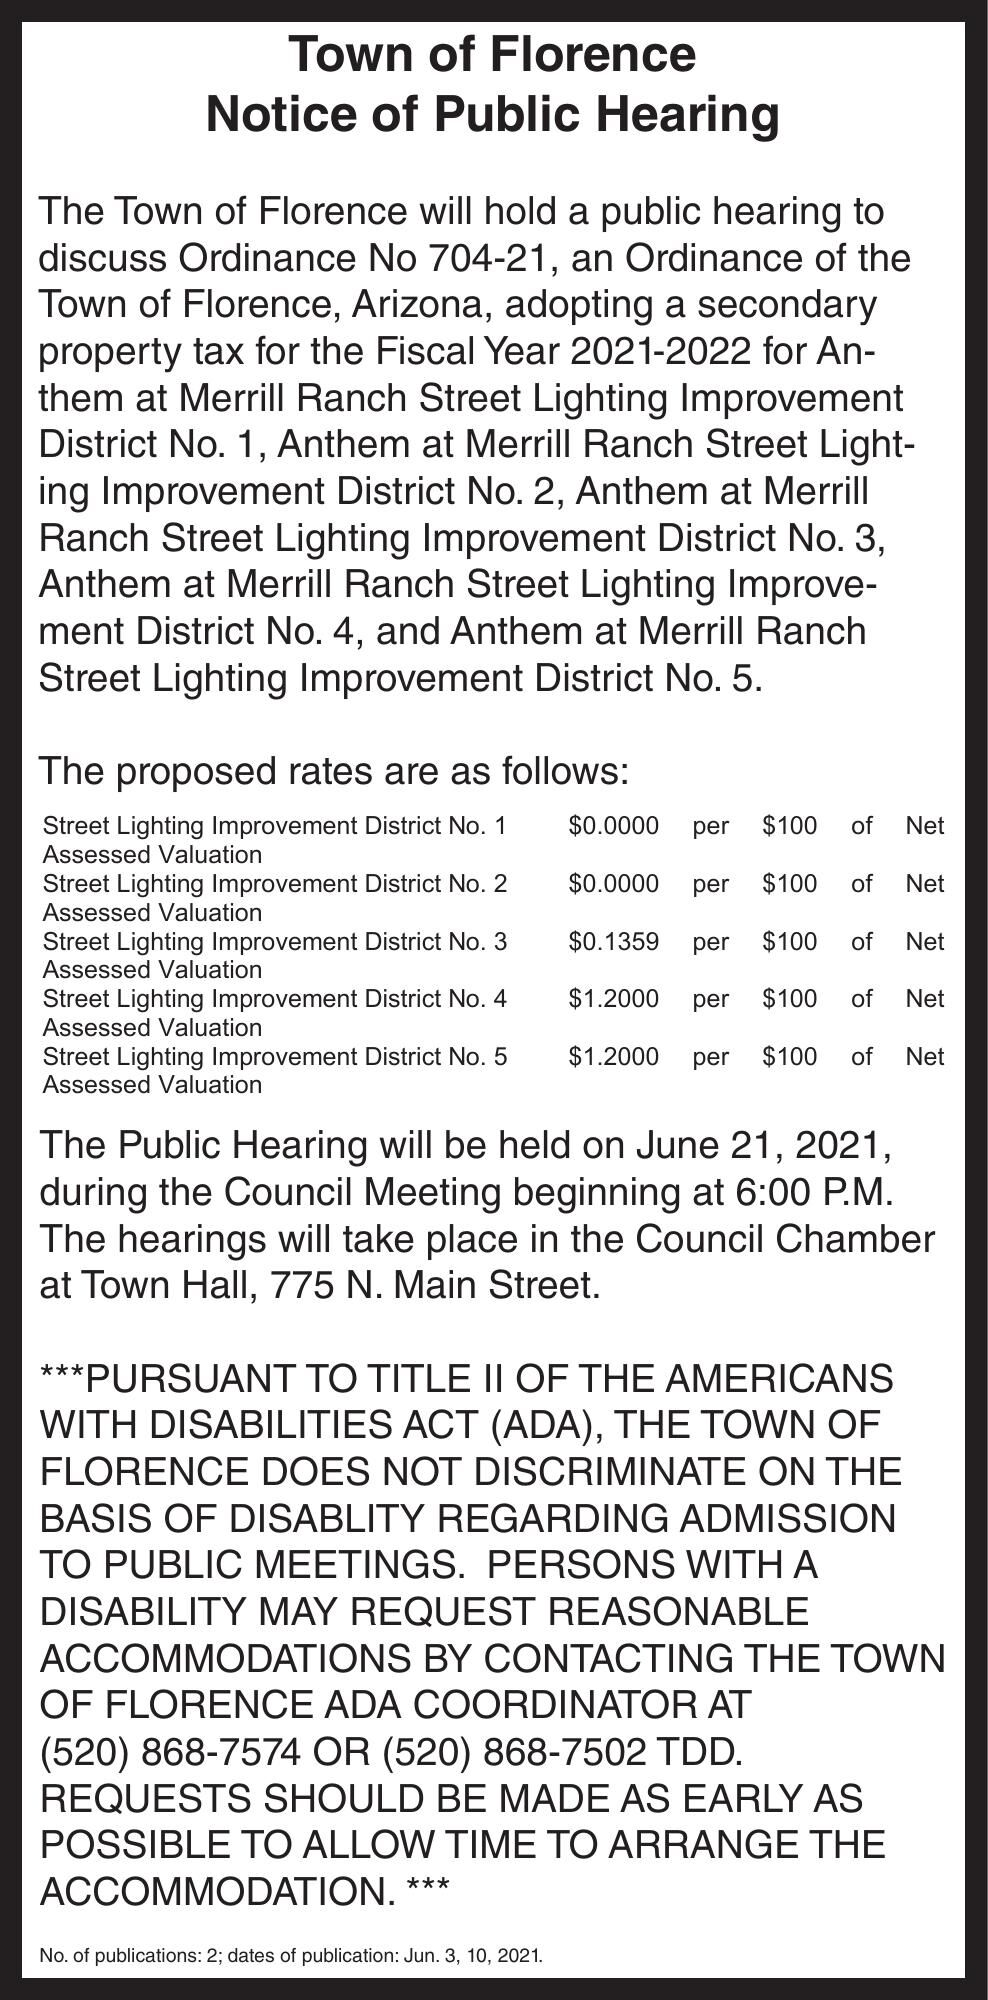 Town of Florence Notice of Public Hearing